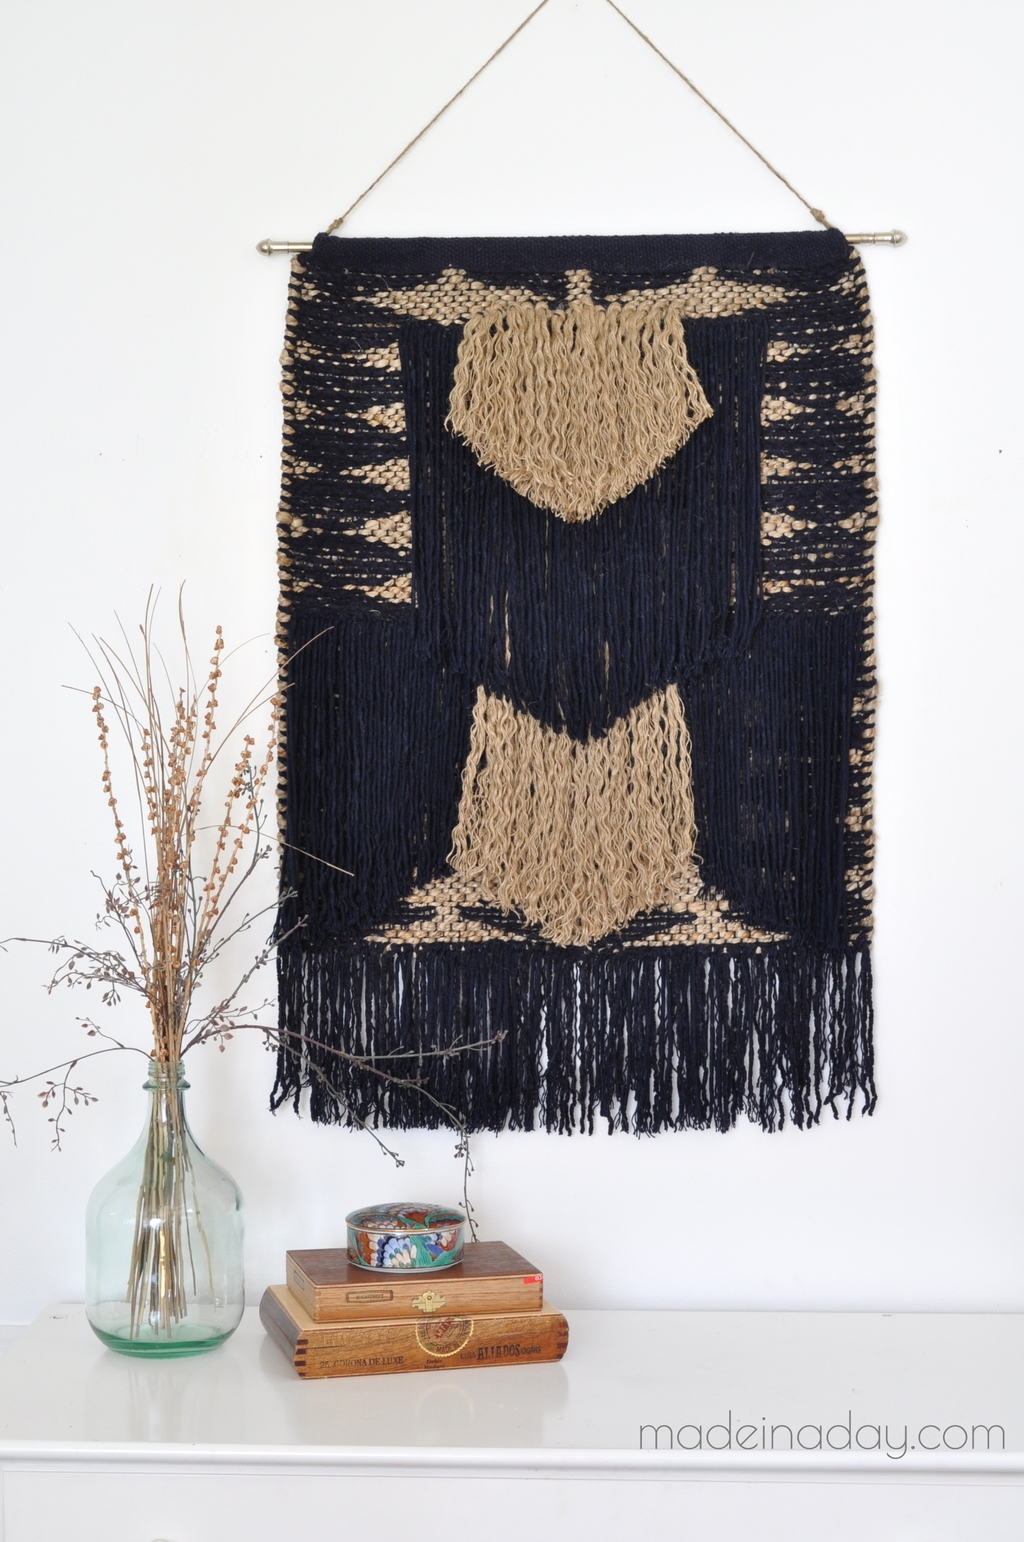 Make a tapestry from a rug